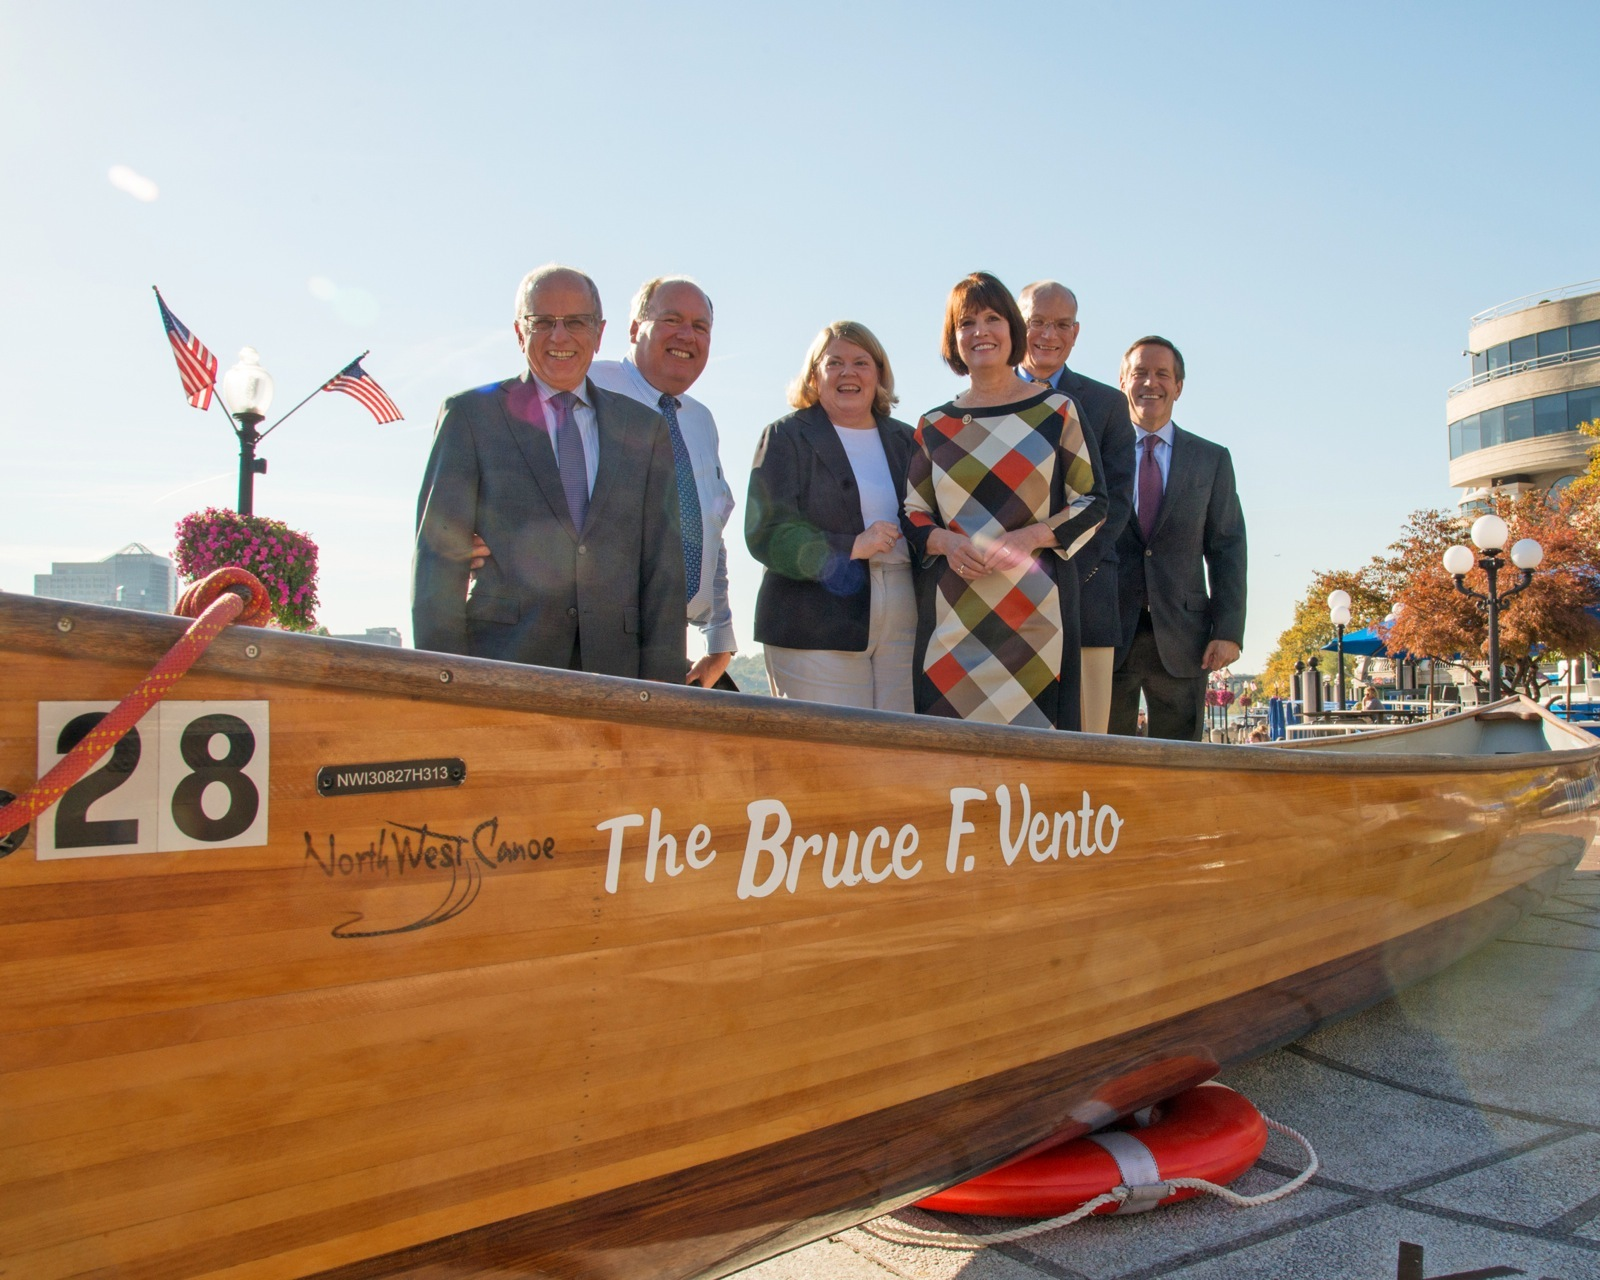 Wilderness Inquiry staff and RBC staff smile in front of the Bruce Vento Voyageur canoe